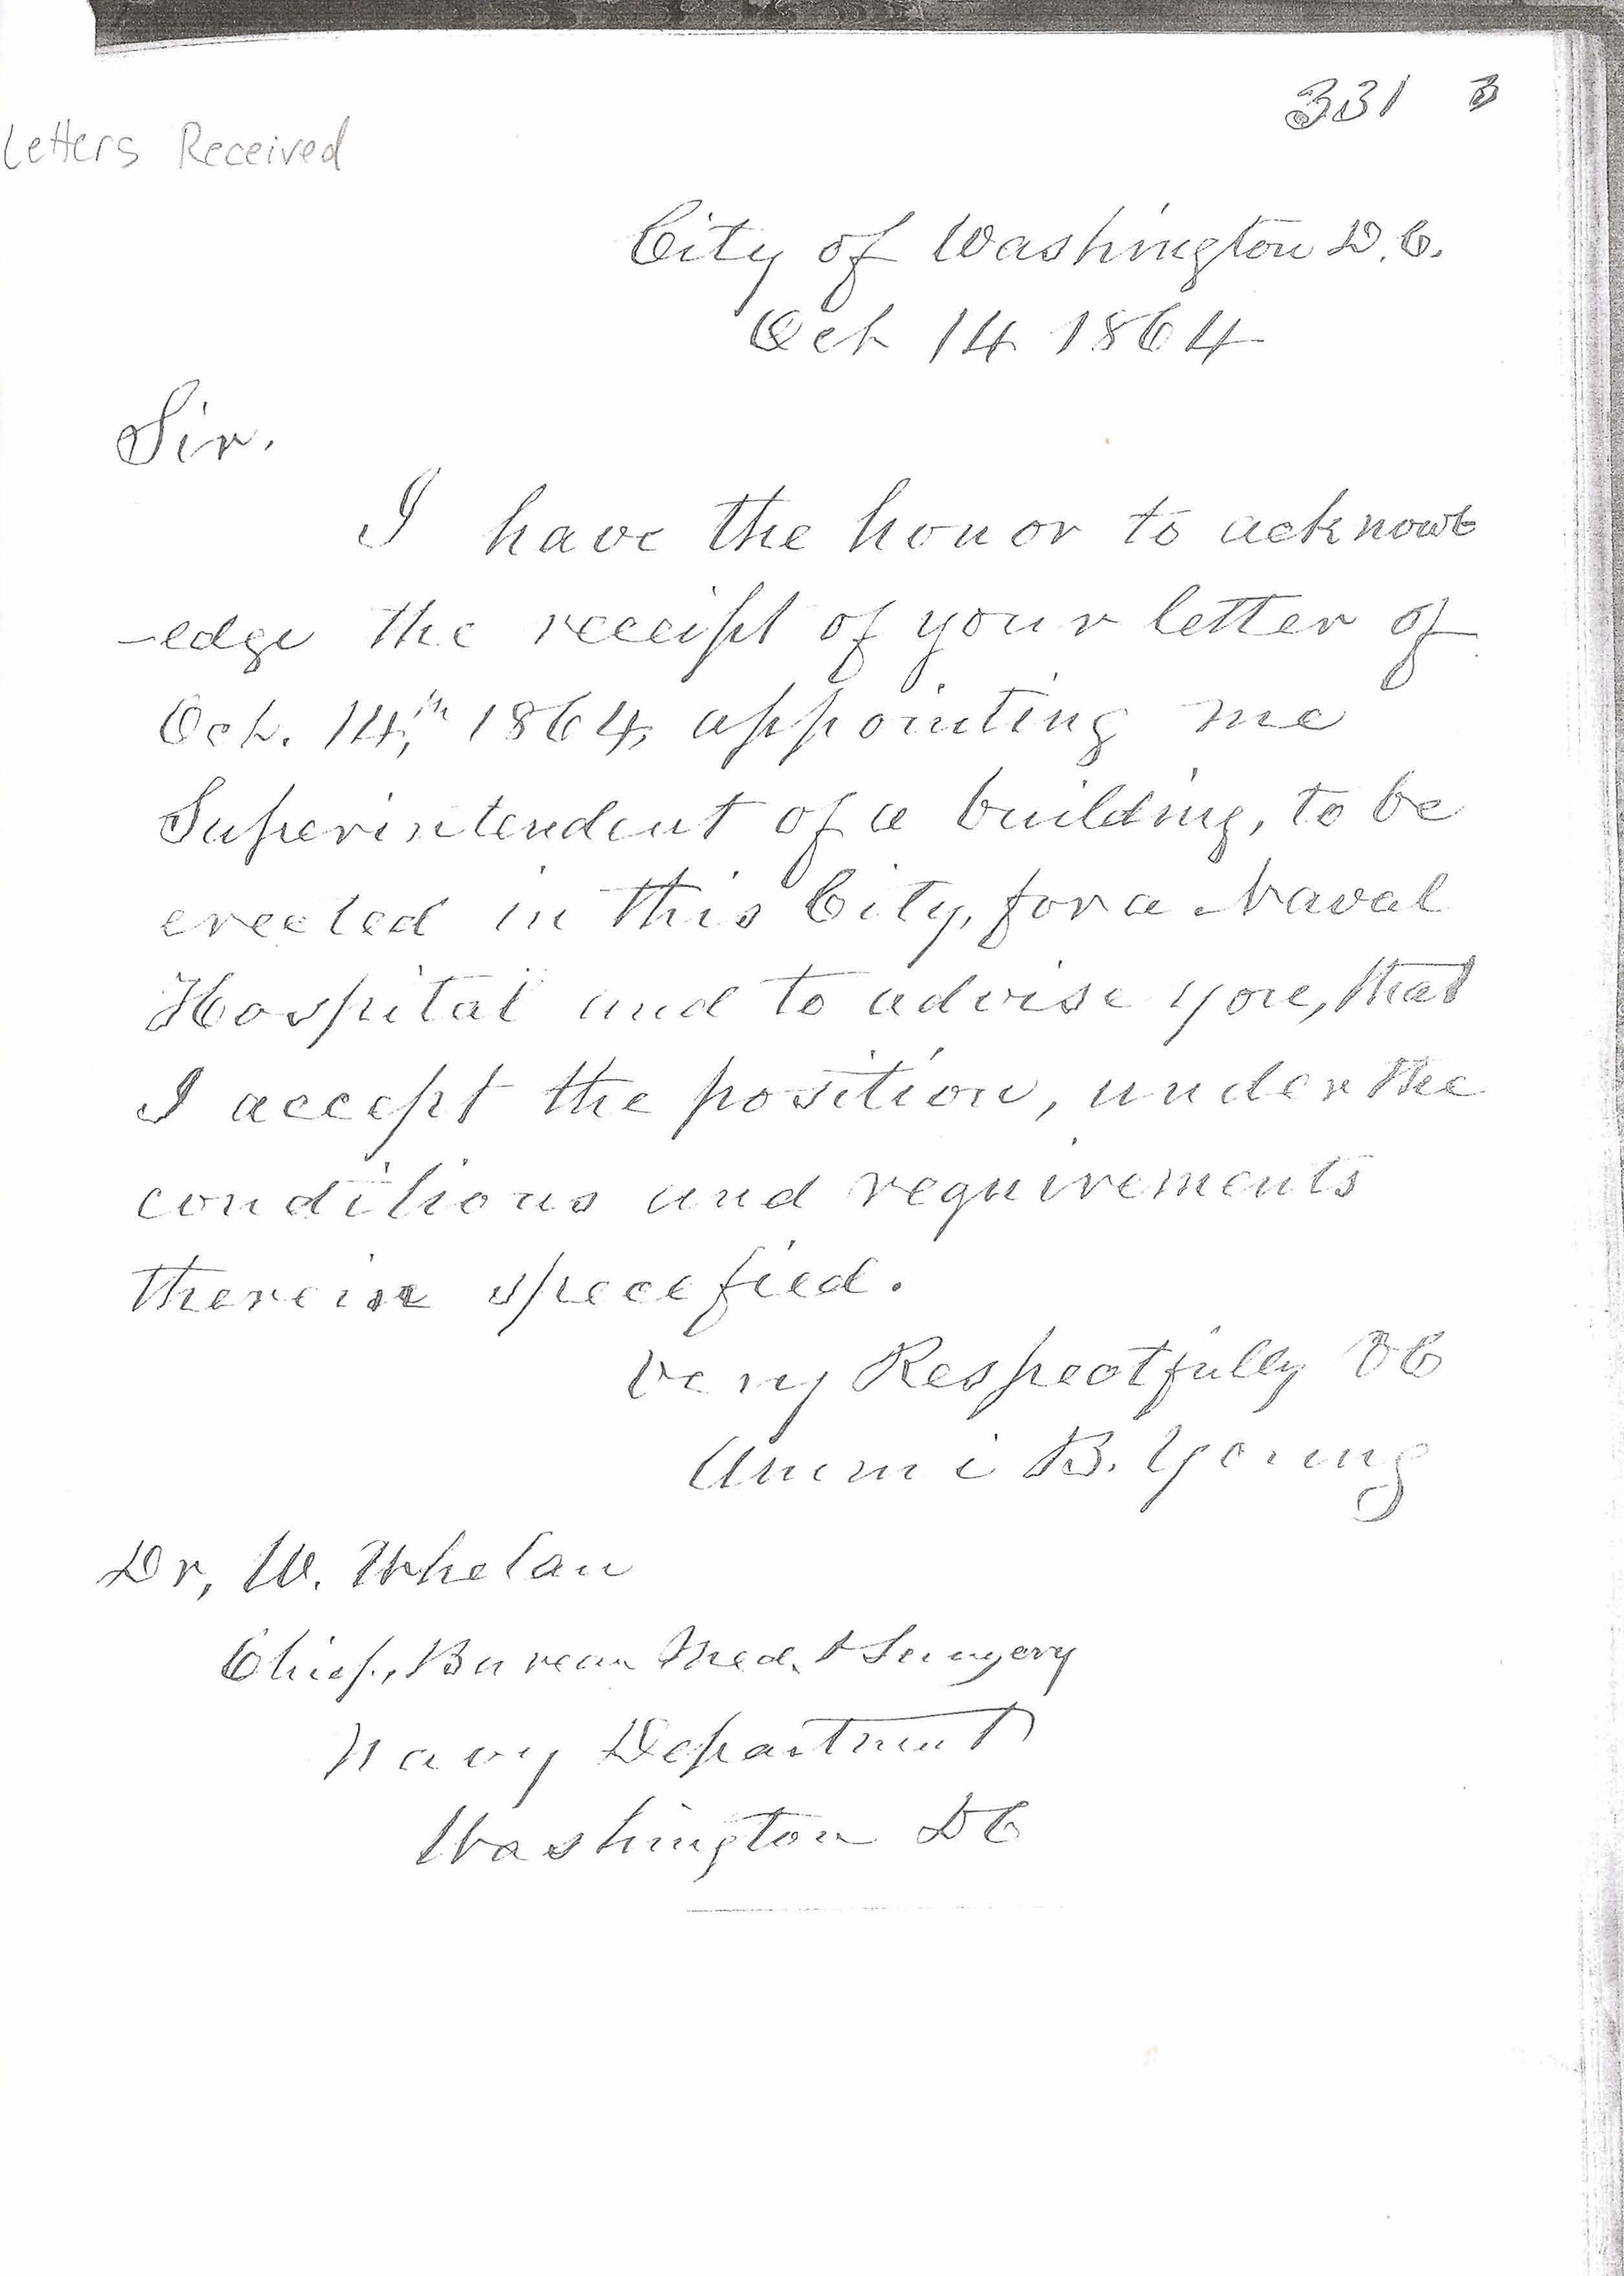 of ammi b young accepting appointment as superintendent of letter of ammi b young accepting appointment as superintendent of construction 14 1864